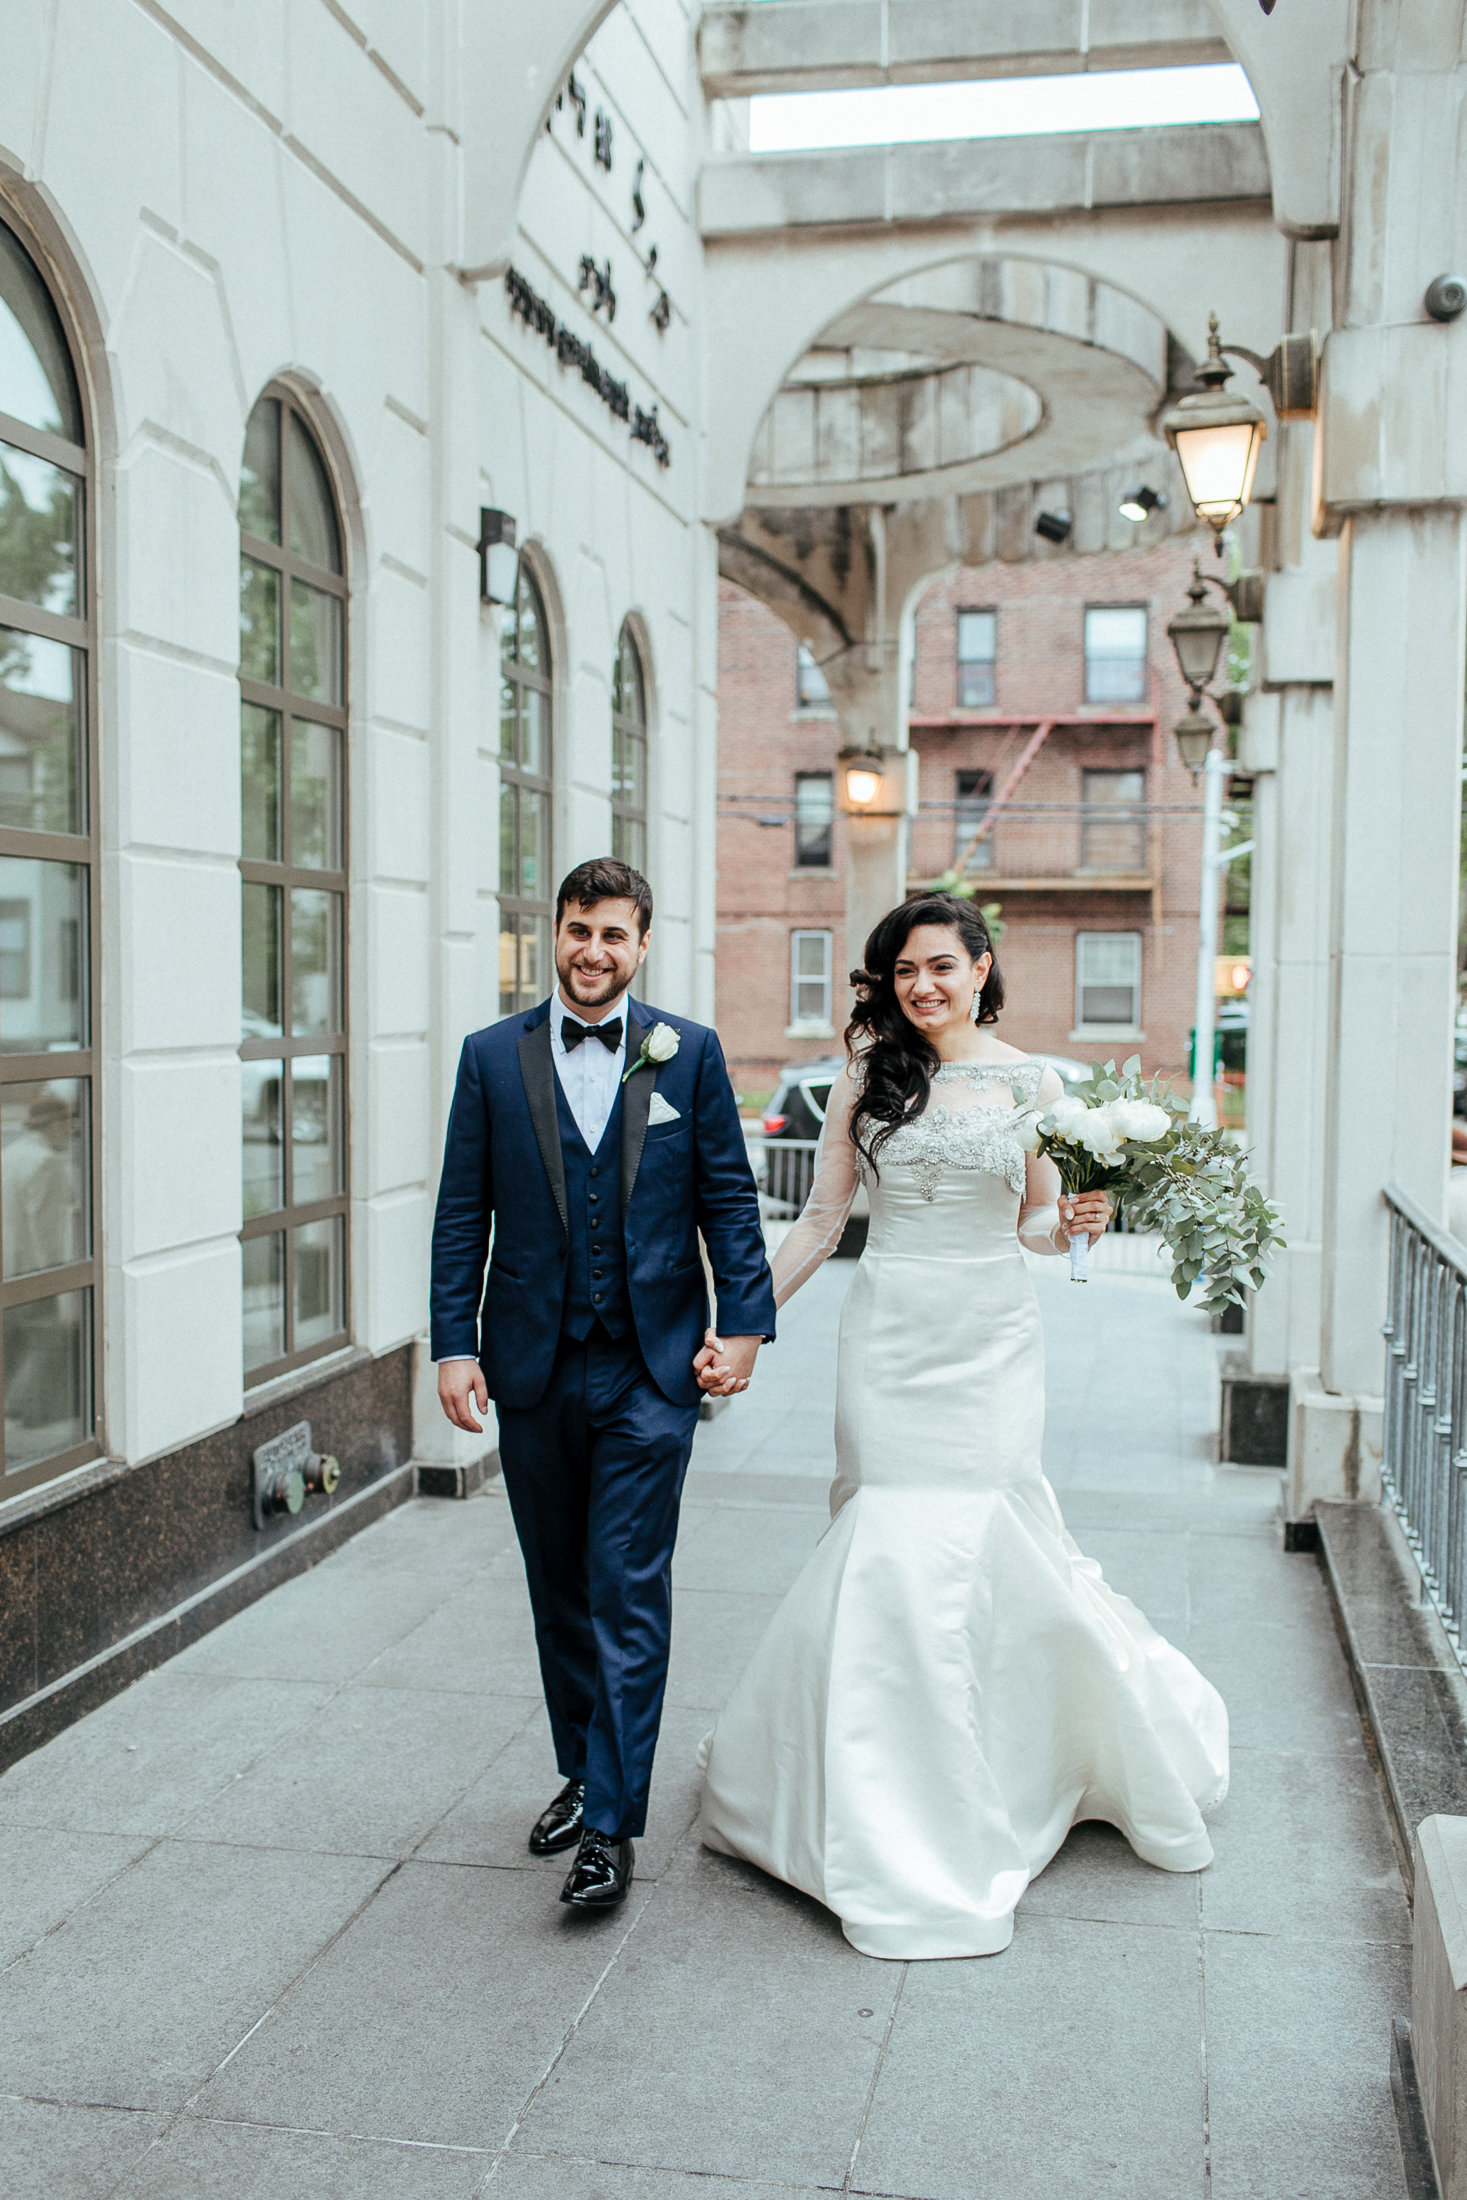 180527_Helen+Doug-Sneak Peek-112.jpg